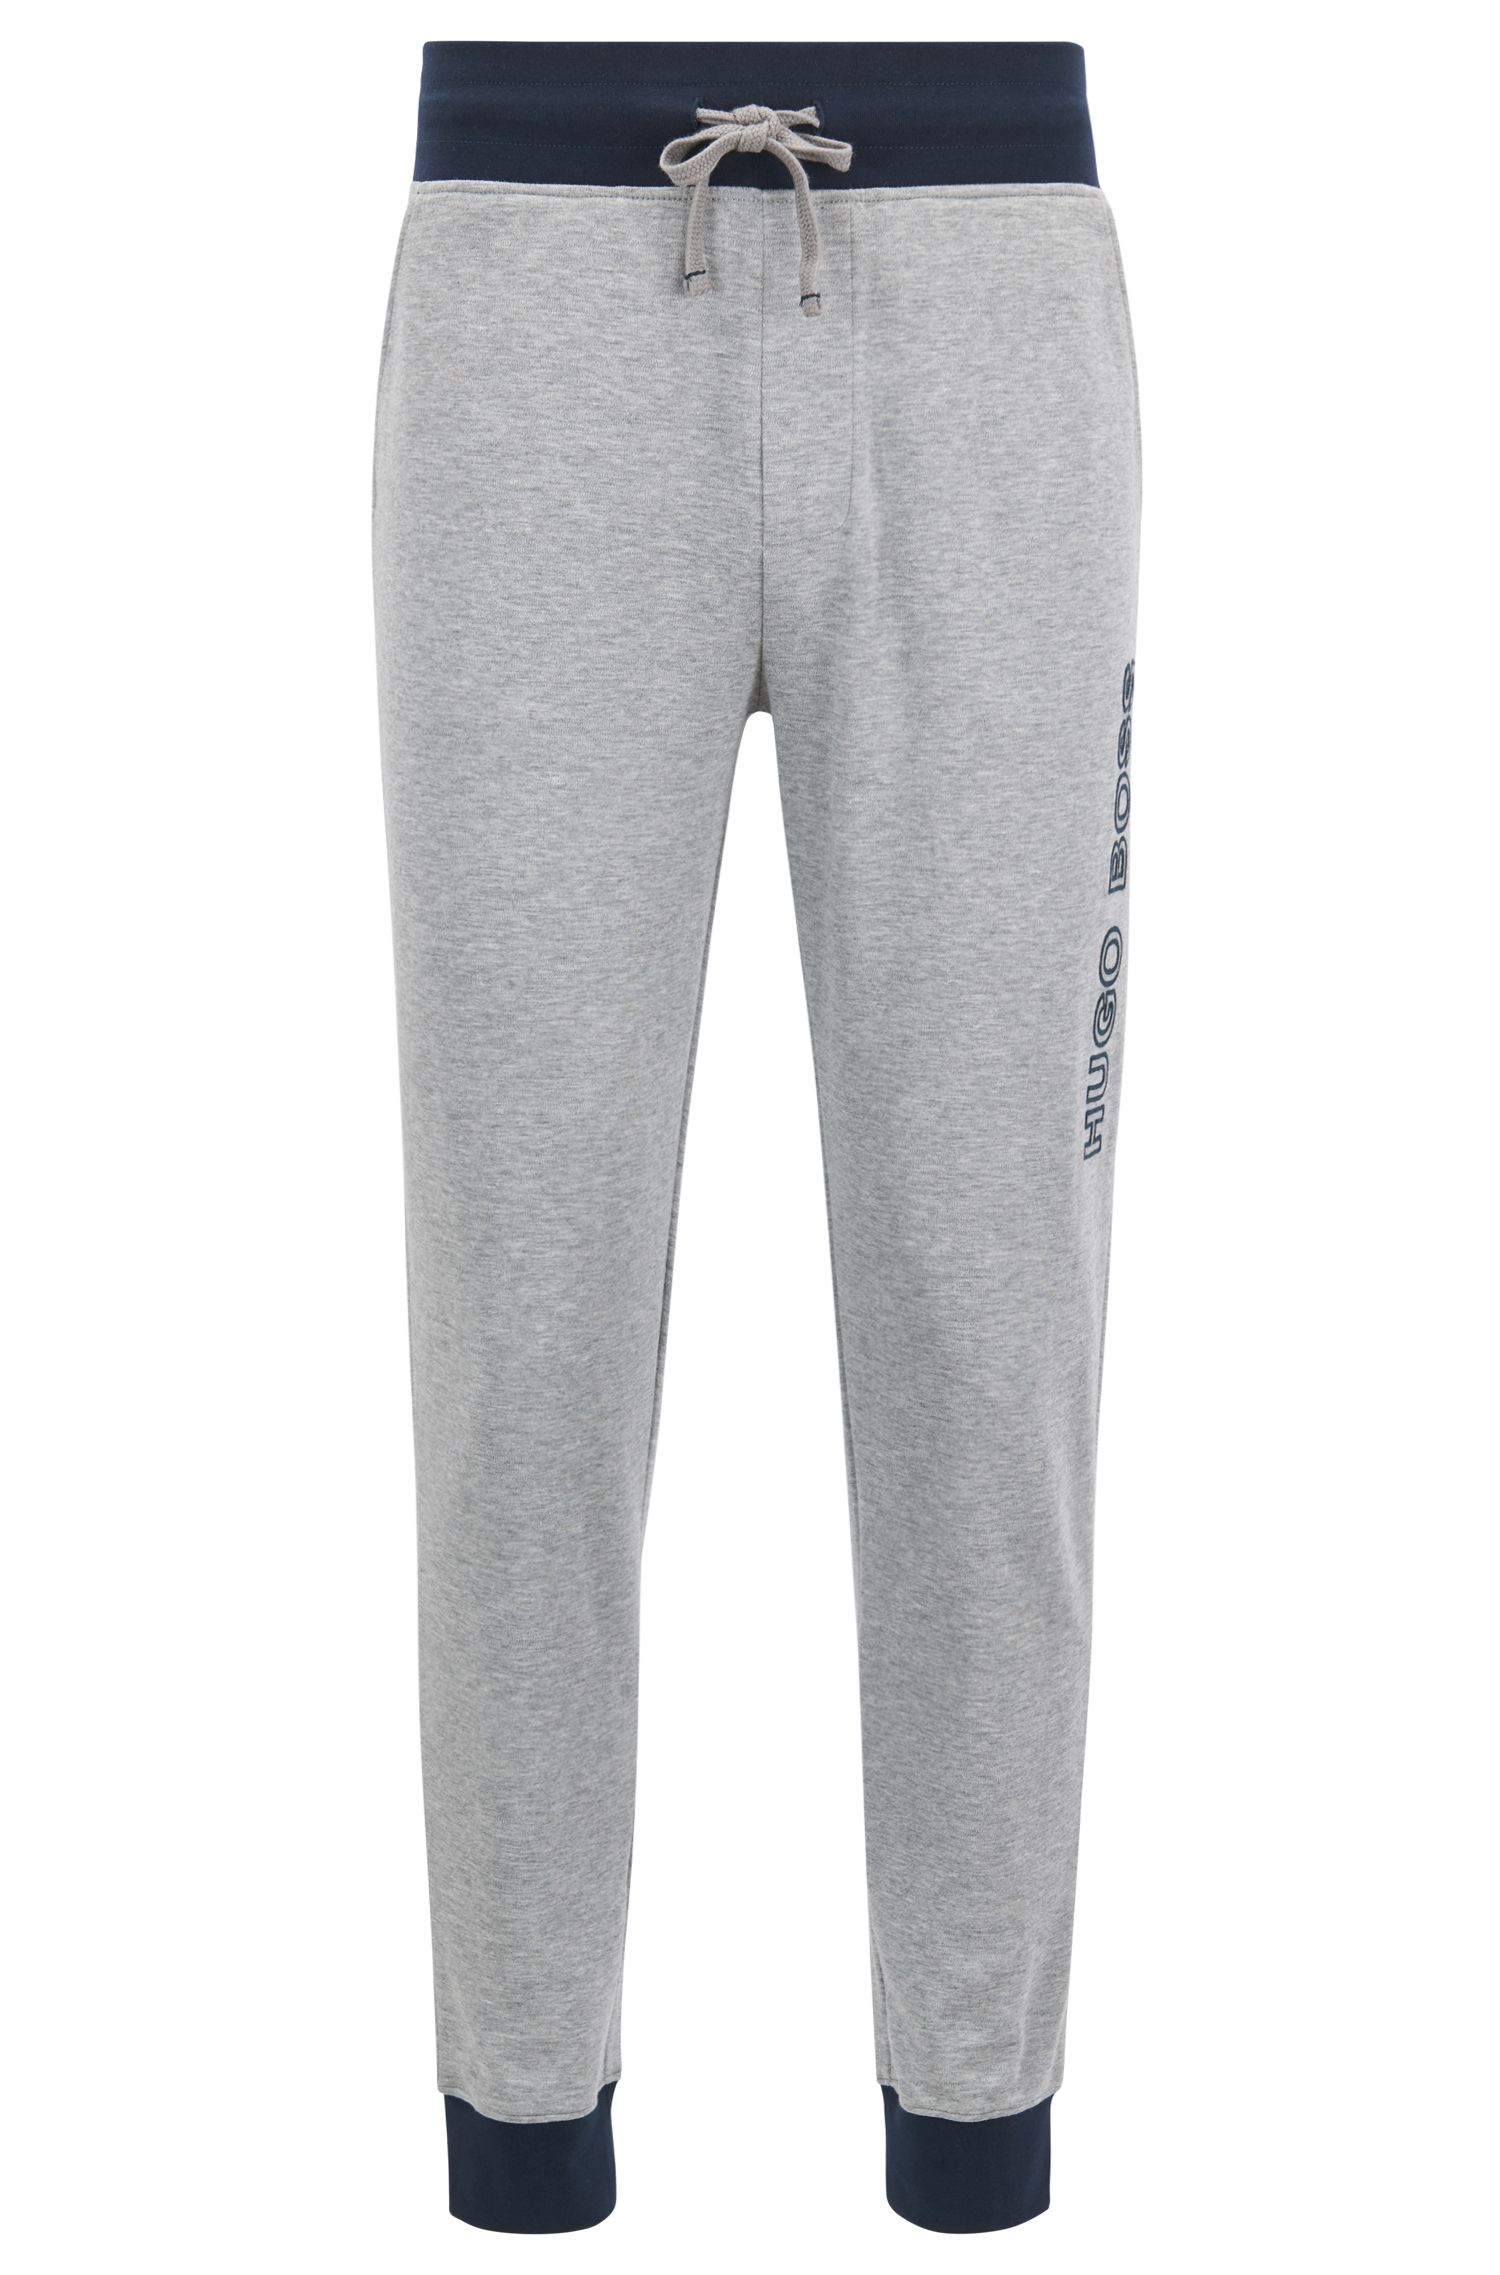 Cuffed jogging bottoms in cotton with contrast details